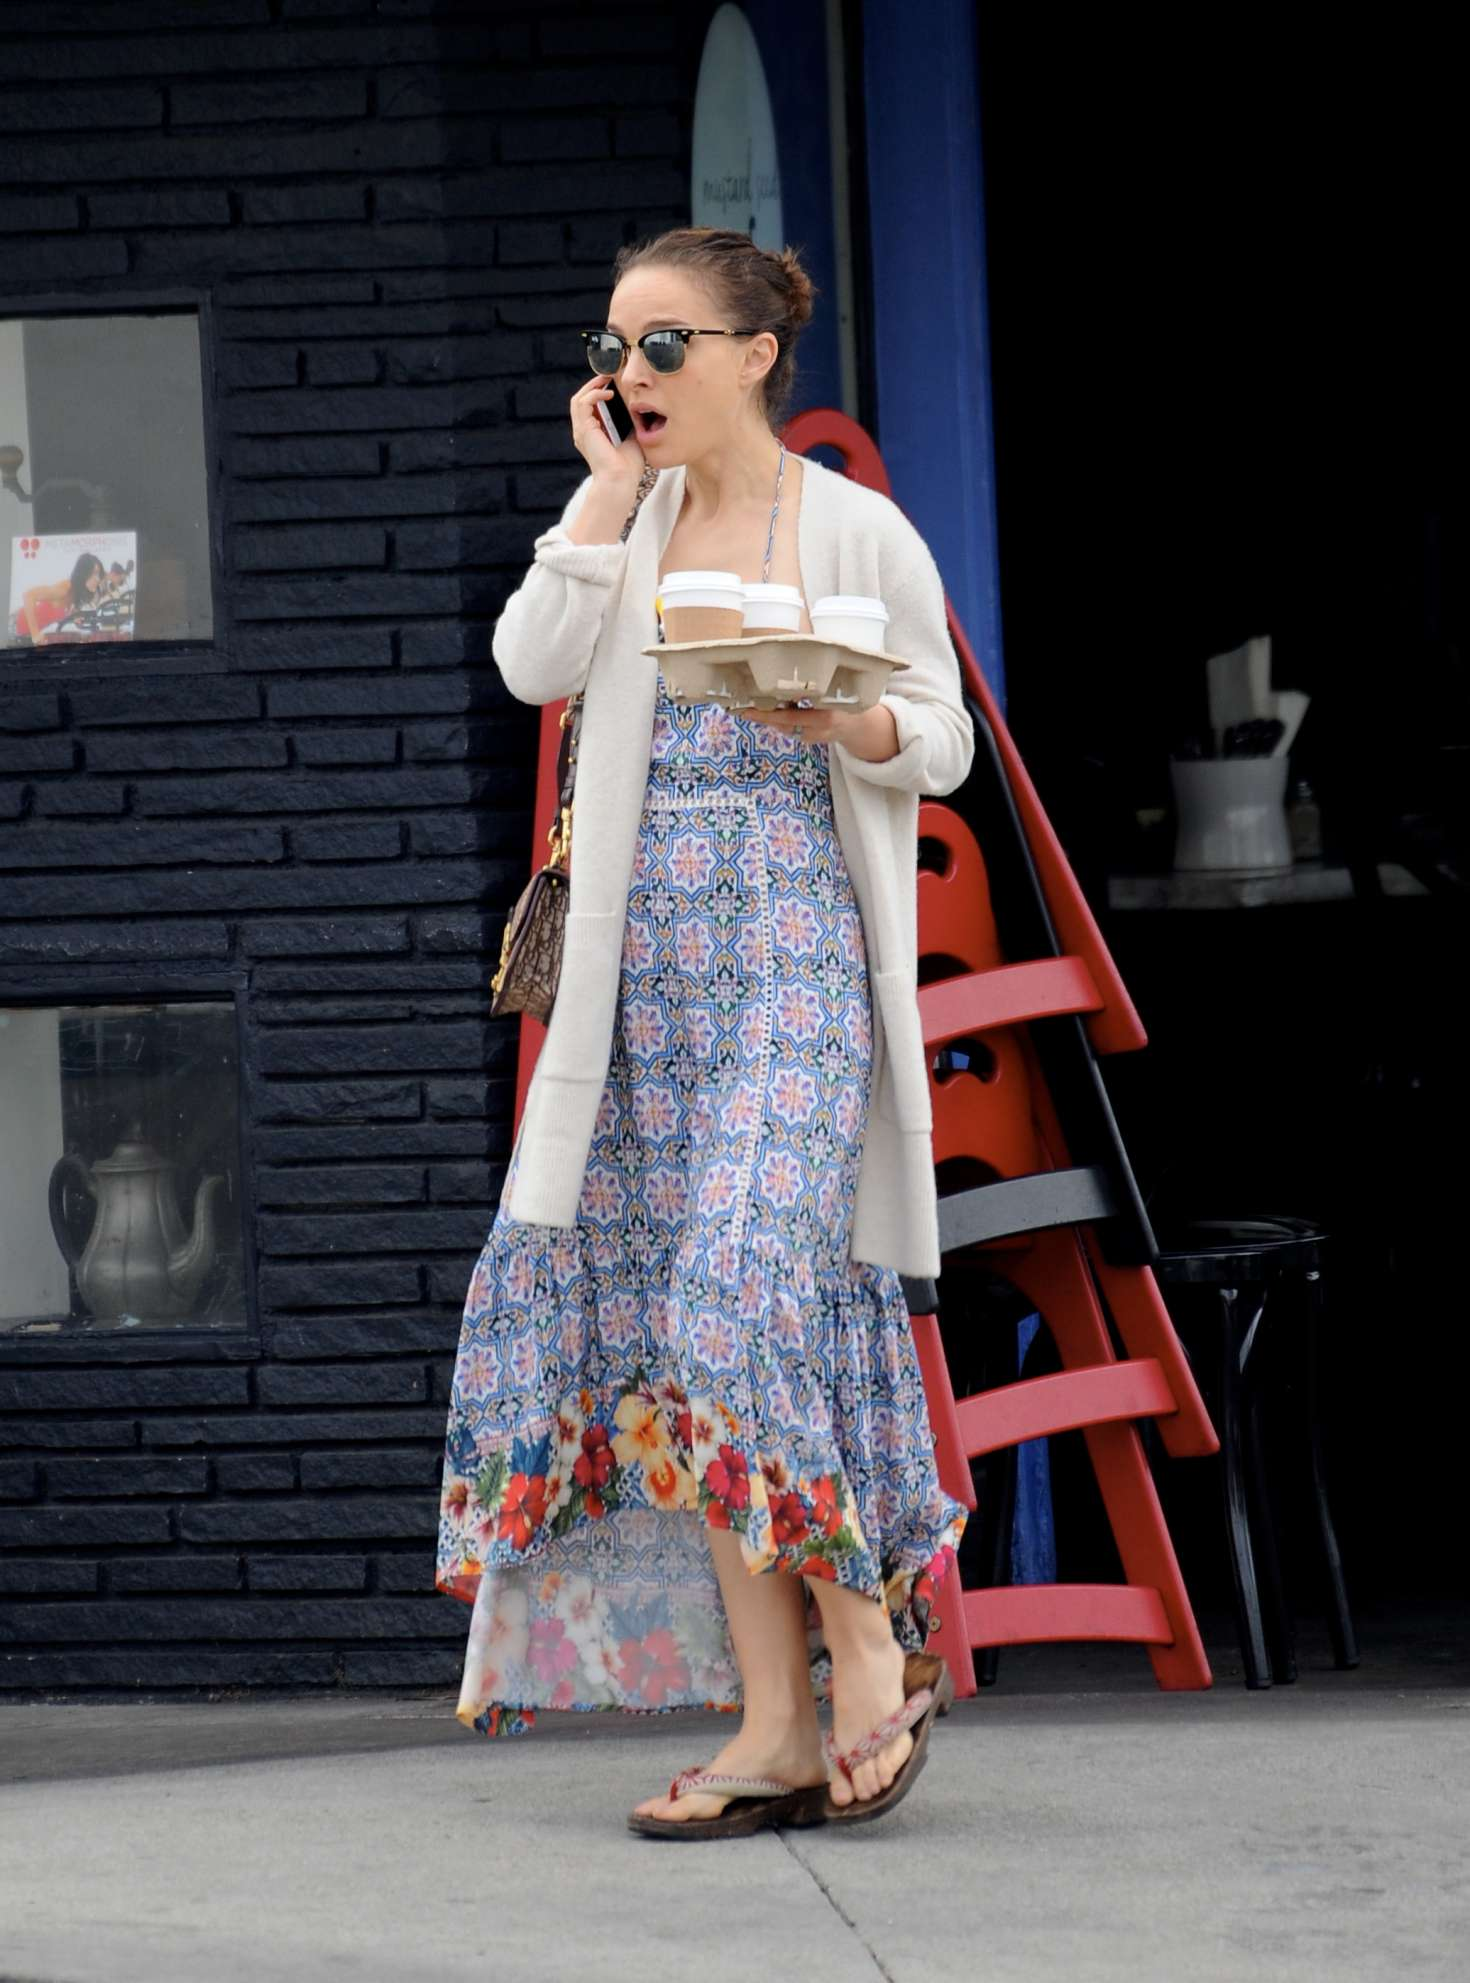 Natalie Portman in Long Dress - Out in Los Angeles